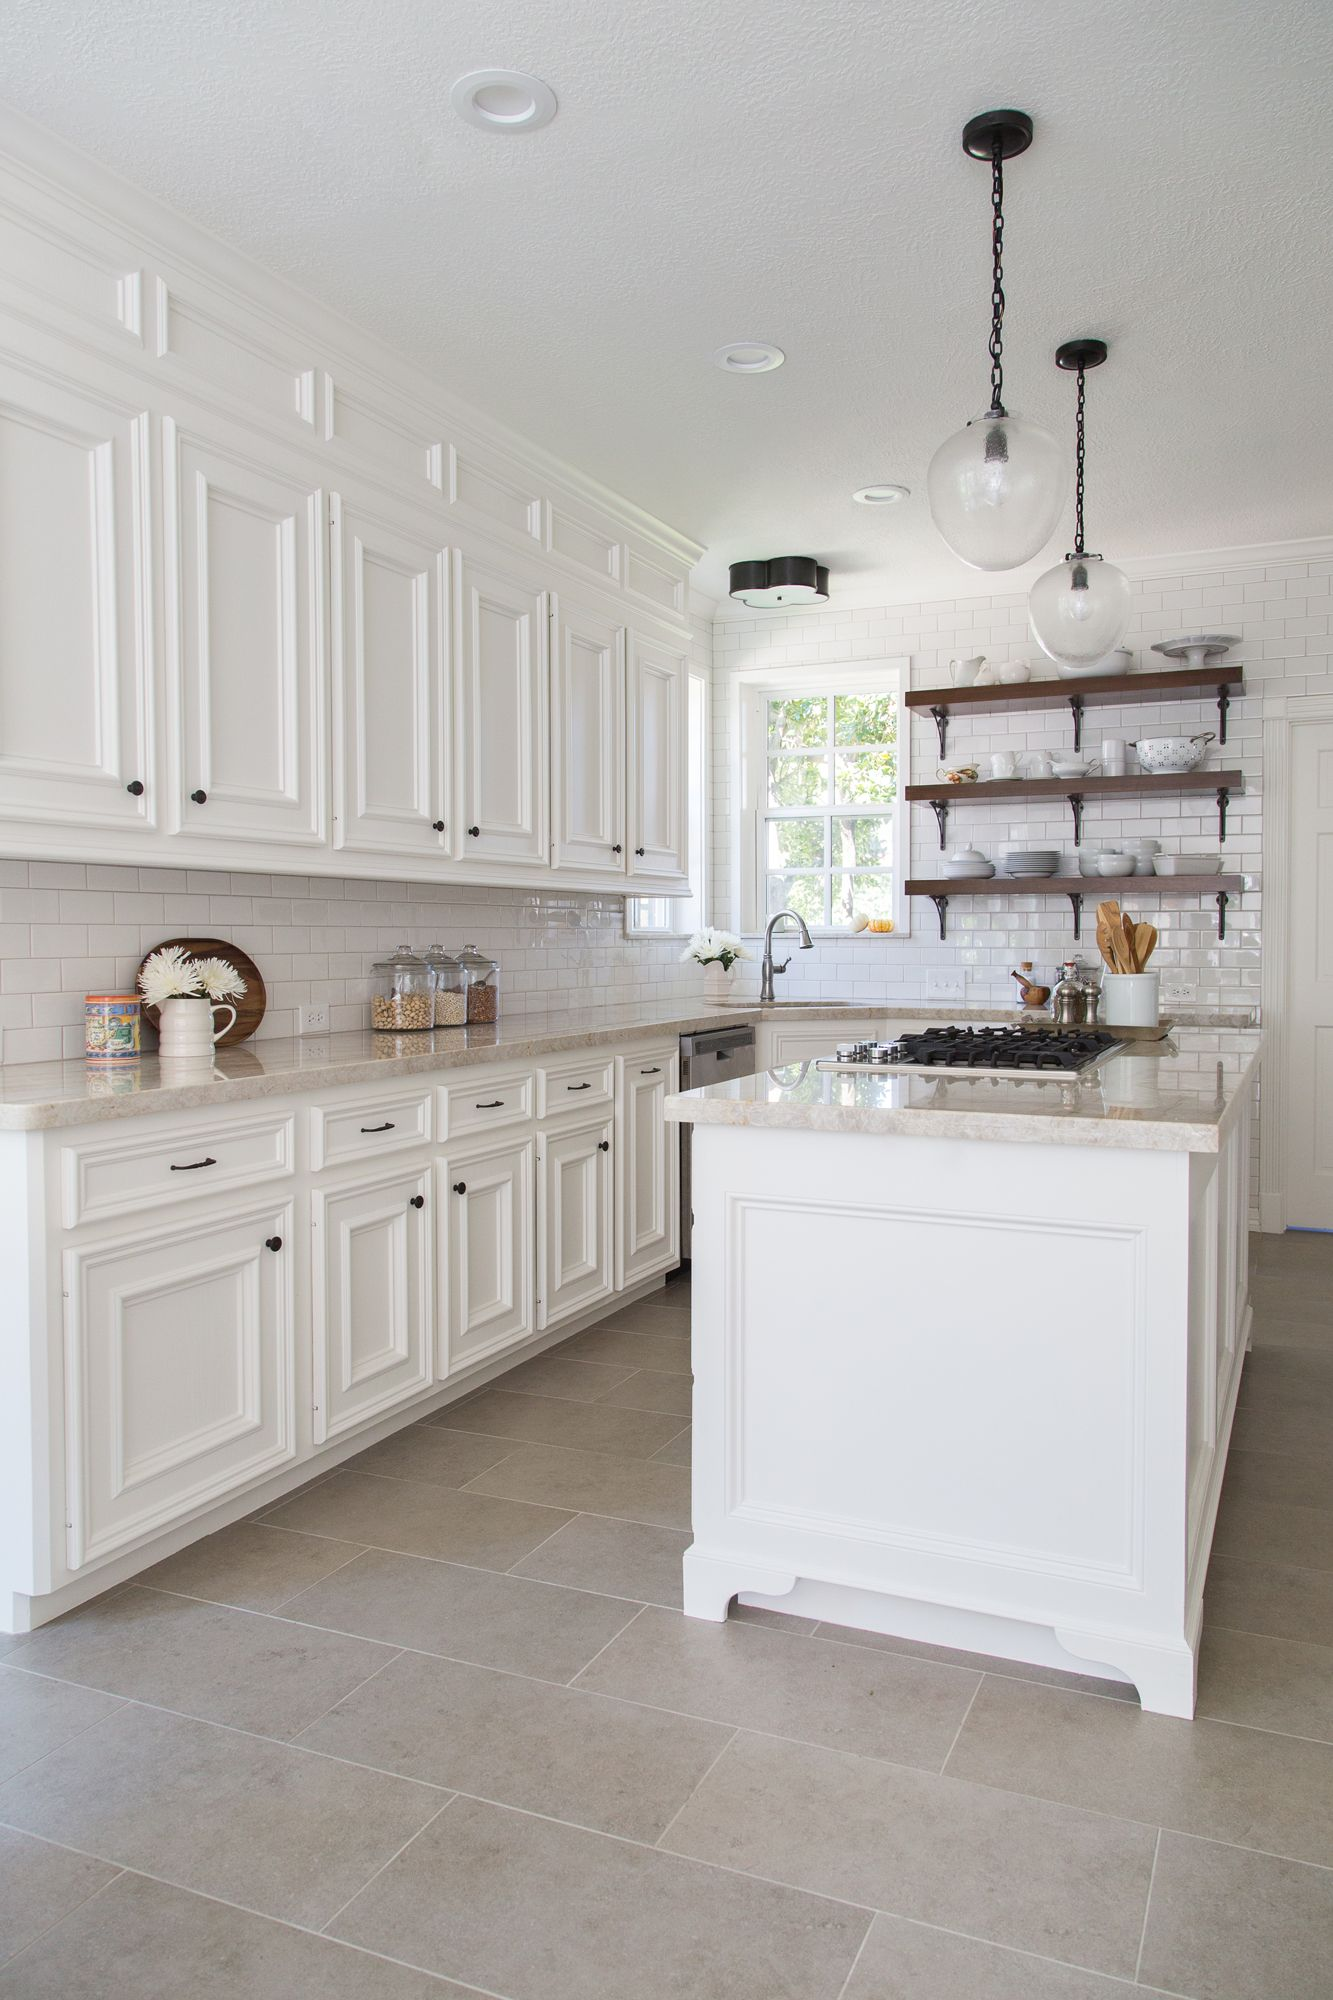 kitchen tiles for white kitchen. Farmhouse kitchen remodel  Interior Designer Carla Aston Photographer Tori BEFORE AFTER A Dark Dismal Kitchen Is Made Light And Bright